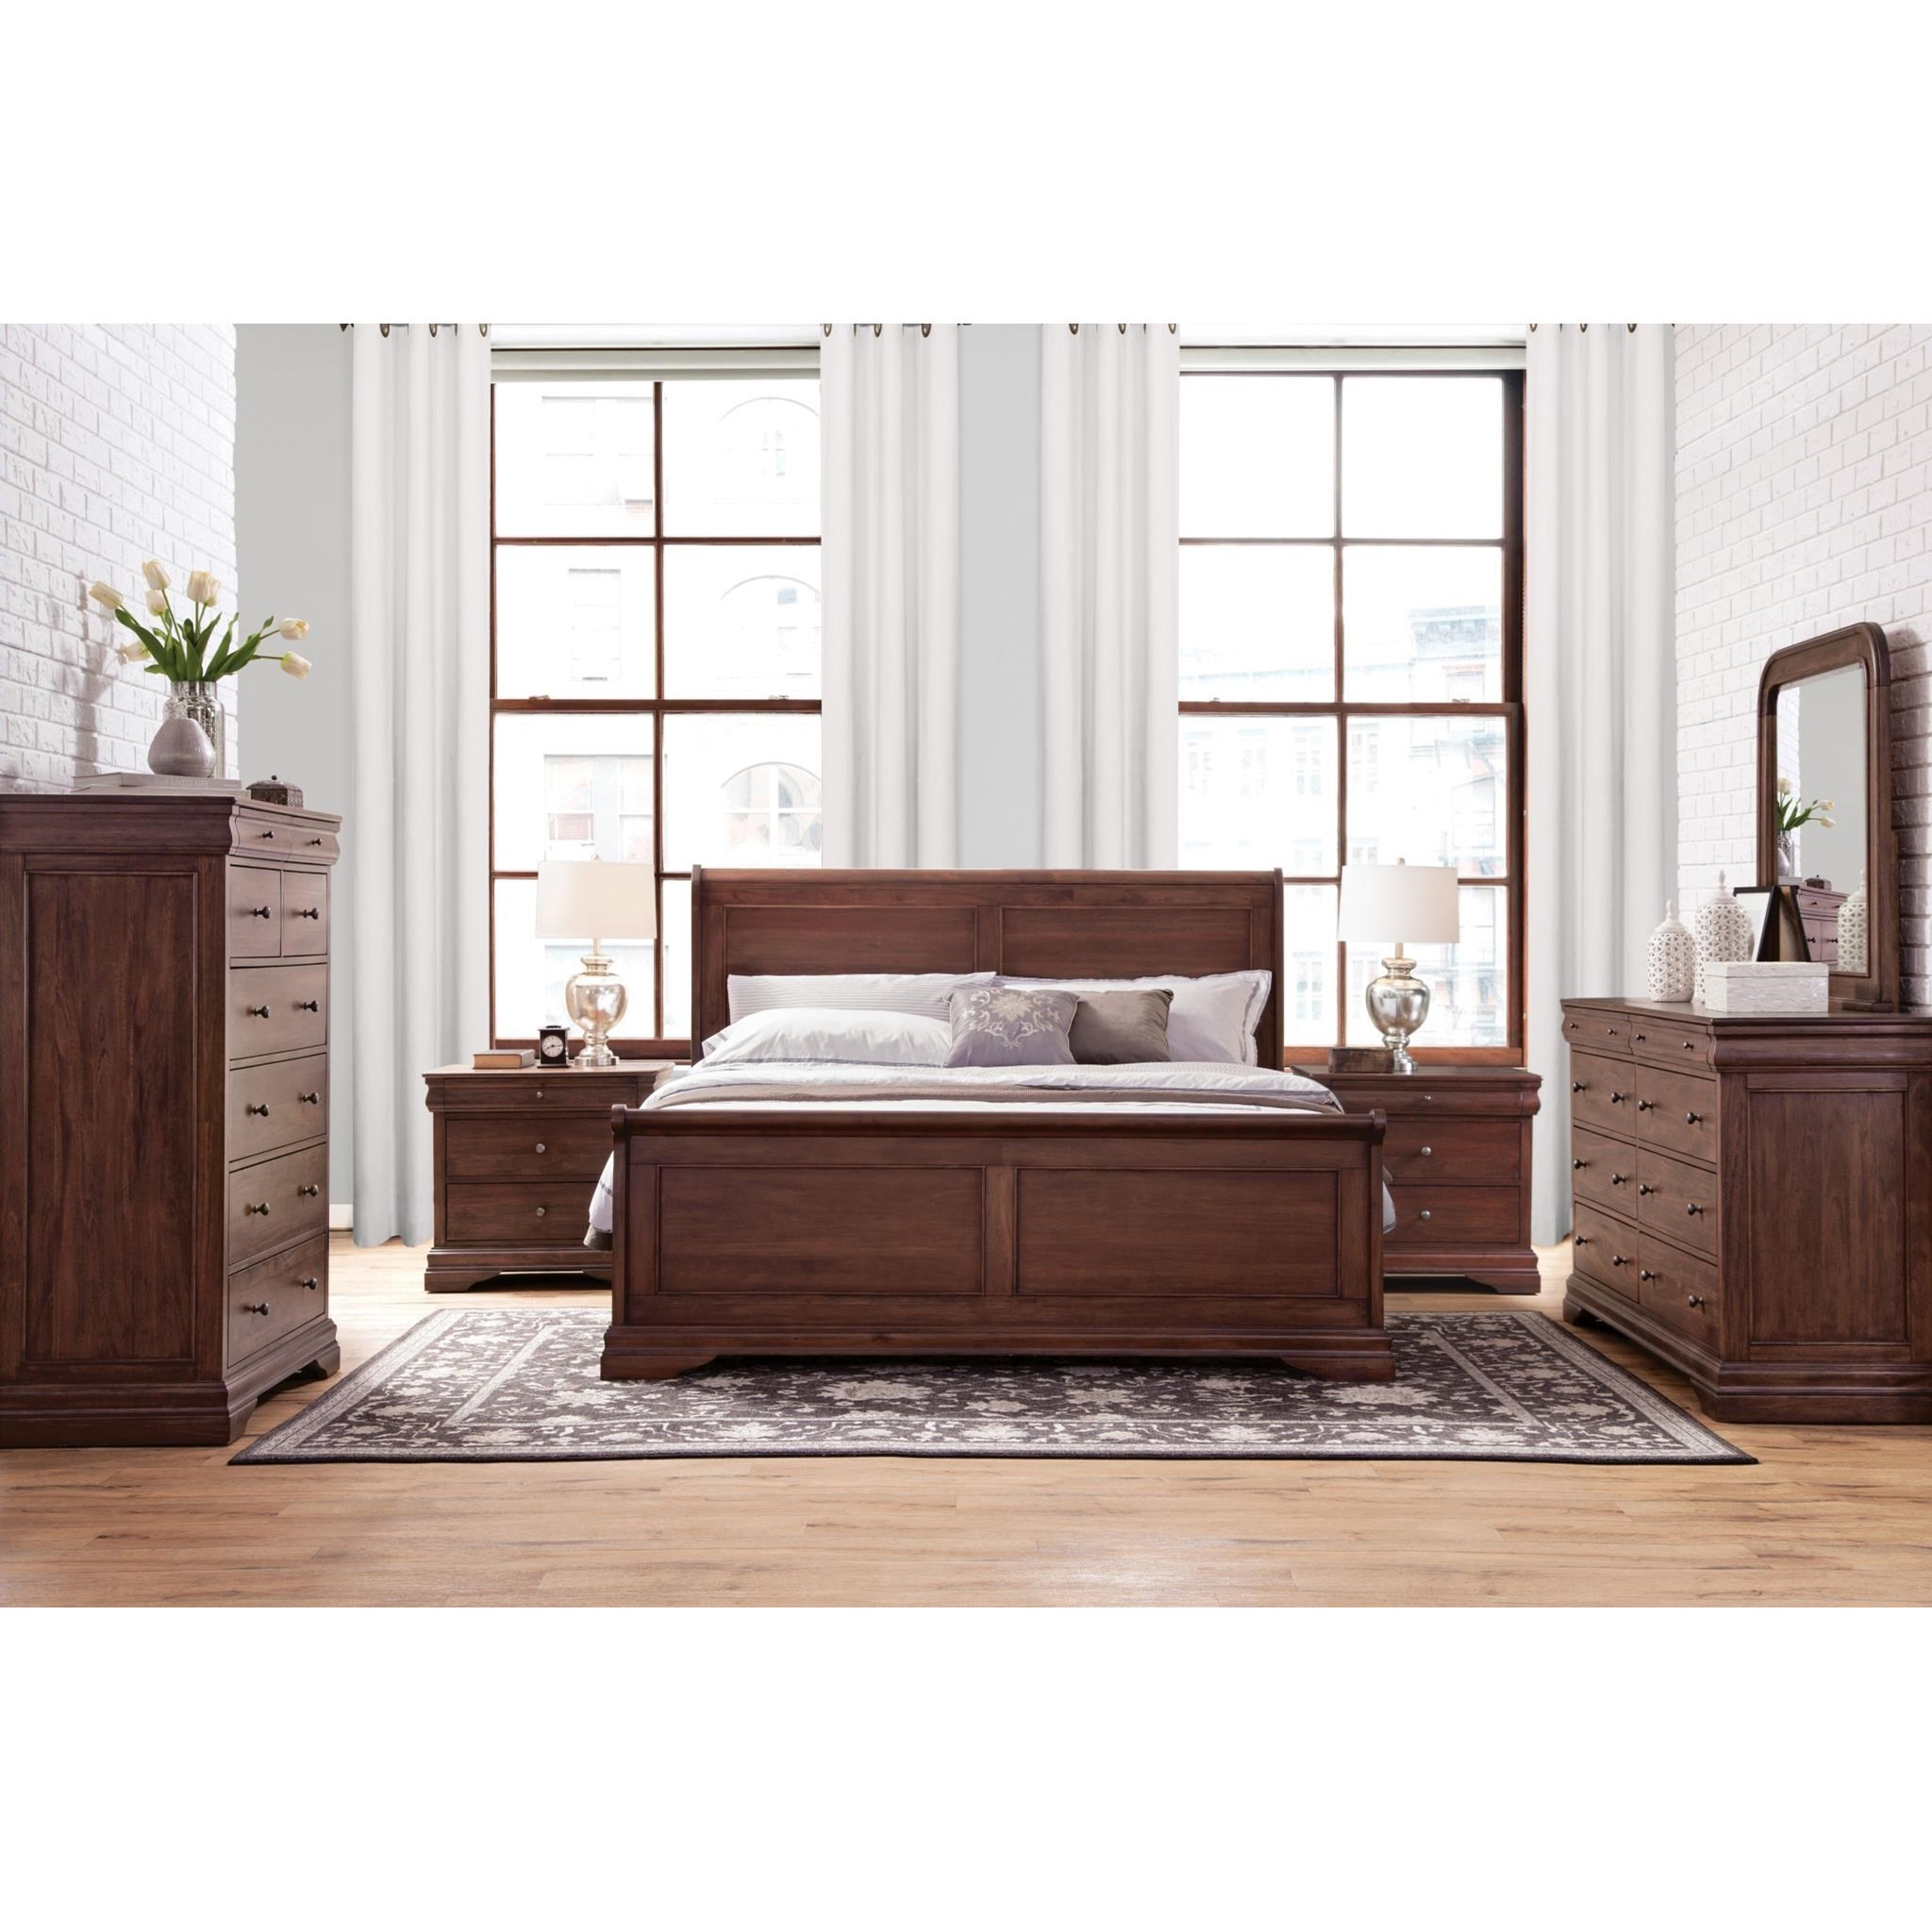 Montpelier California King Bedroom Group by Virginia Furniture Market Solid Wood at Virginia Furniture Market